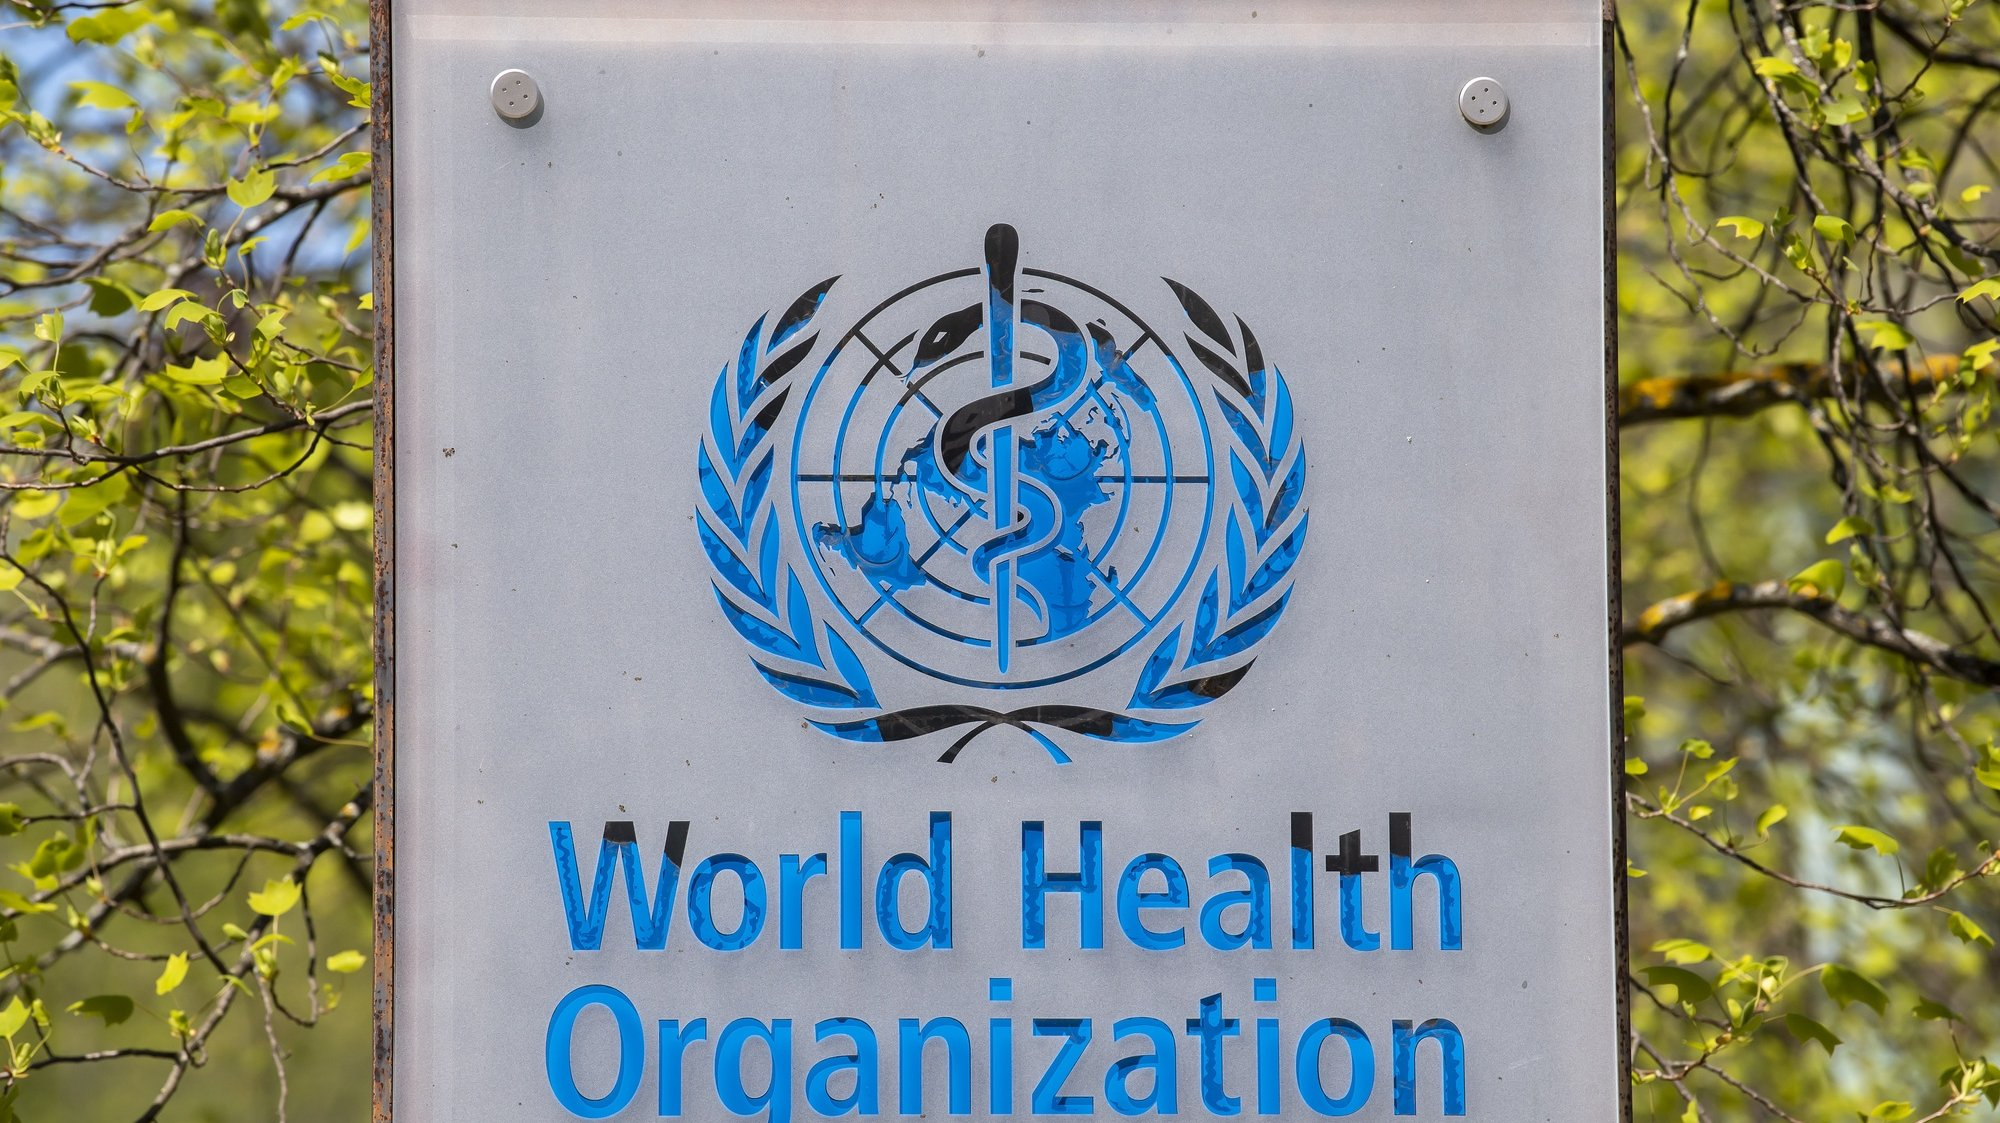 epa08364179 The logo and building of the World Health Organization (WHO) headquarters in Geneva, Switzerland, 15 April 2020. US President Donald Trump announced that he has instructed his administration to halt funding to the WHO. The American president criticizes the World Health Organization for its mismanagement of the Coronavirus pandemic Covid-19.  EPA/MARTIAL TREZZINI